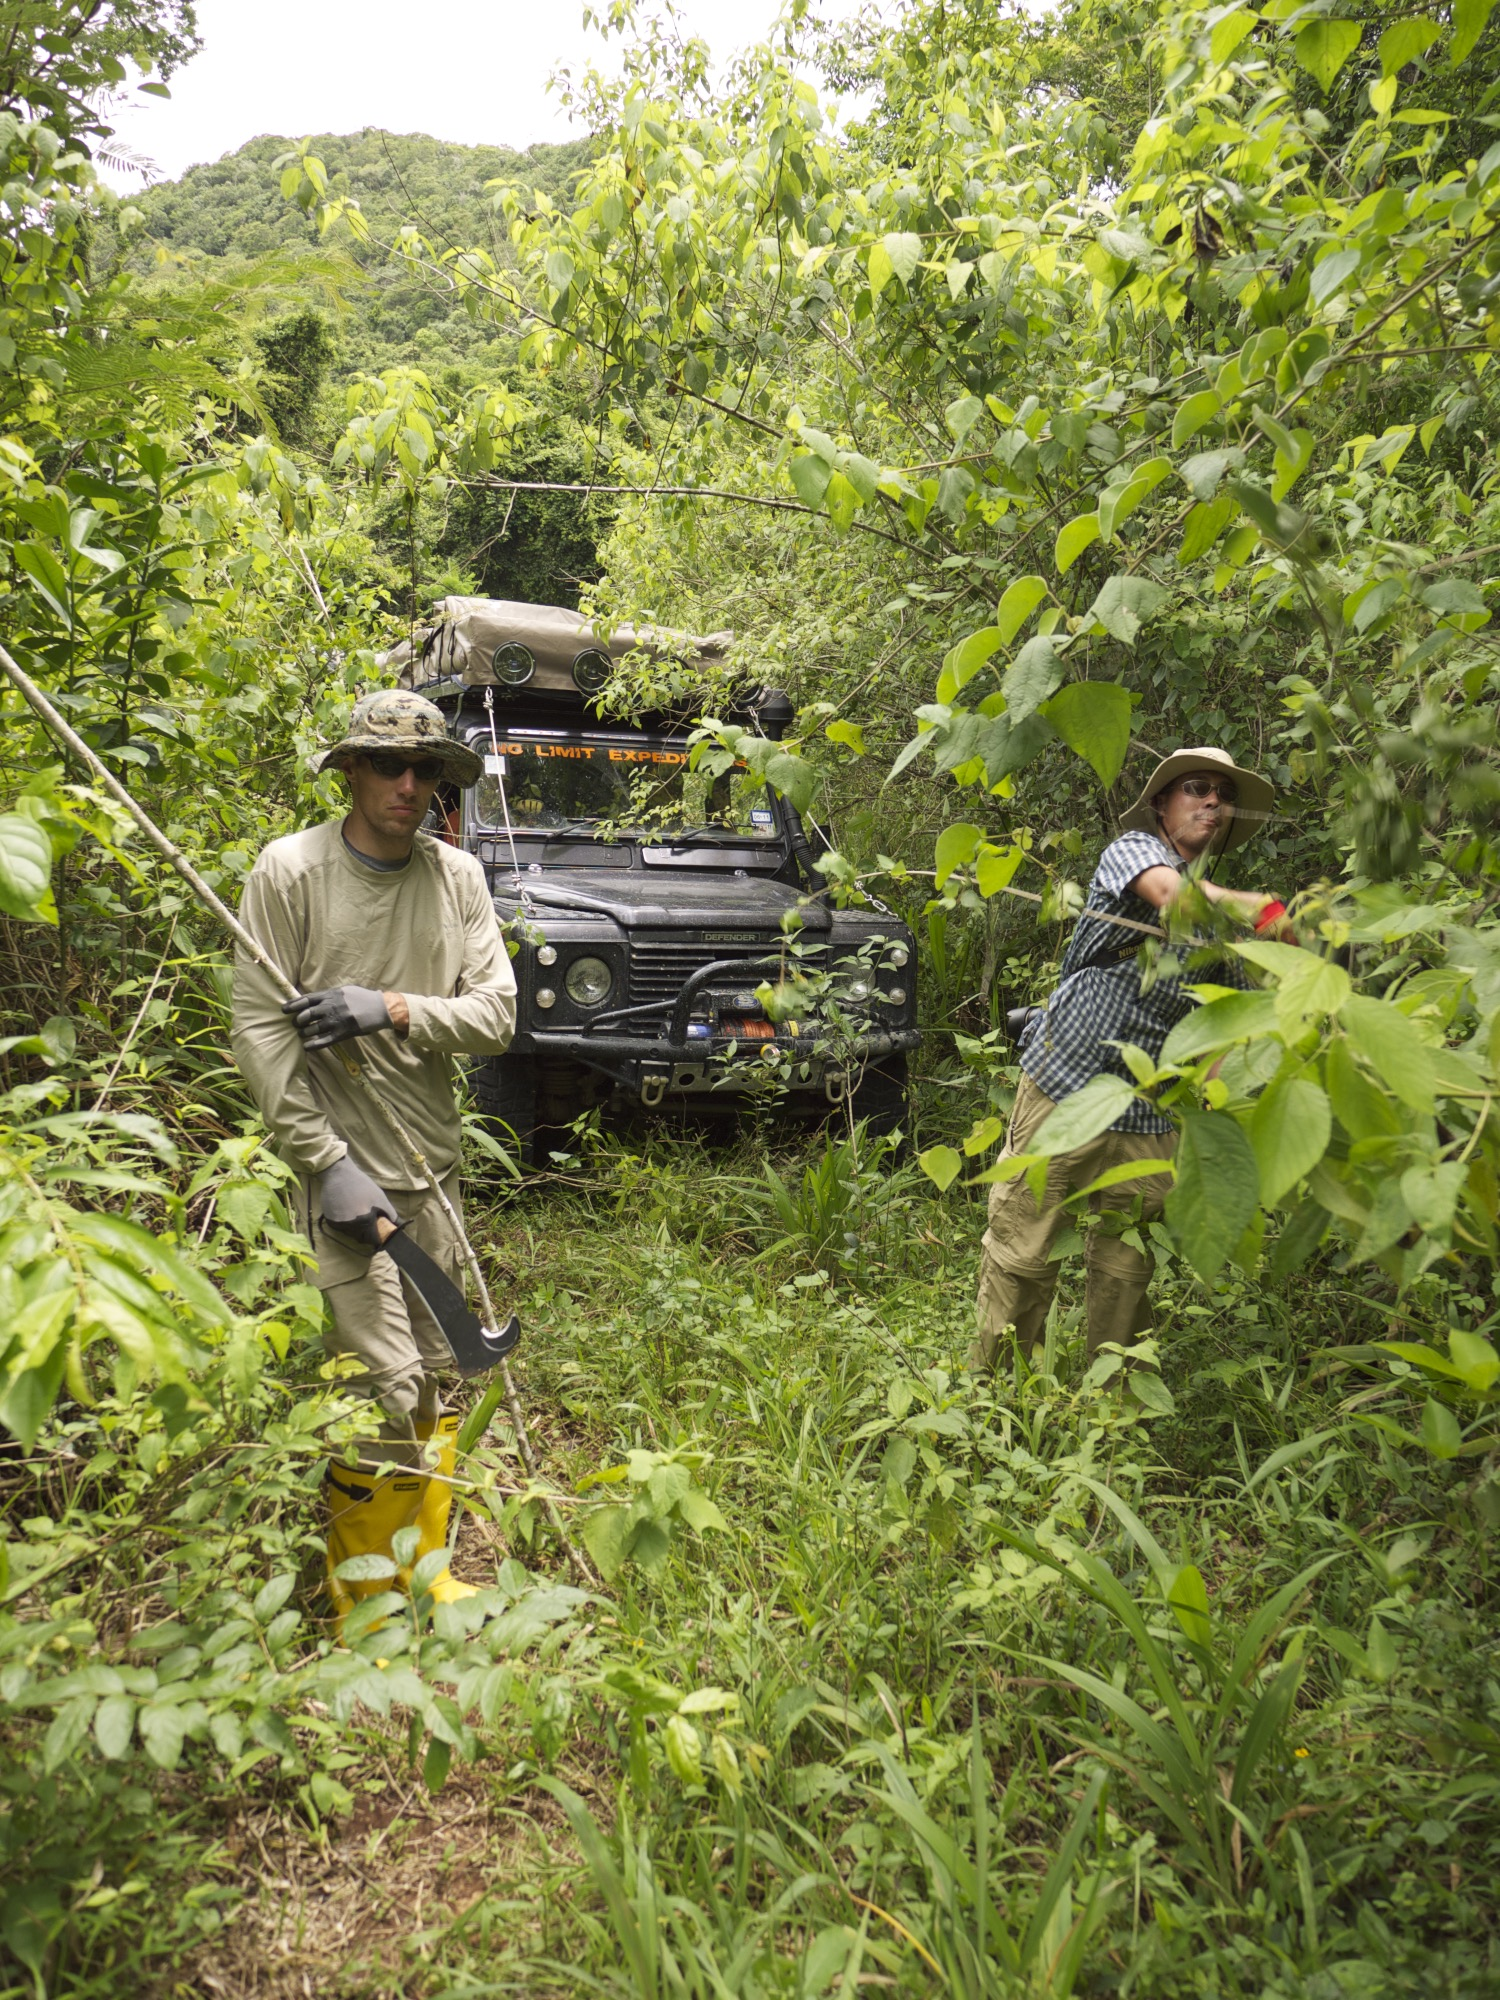 Vince and Joey clearing brush ahead of the trucks